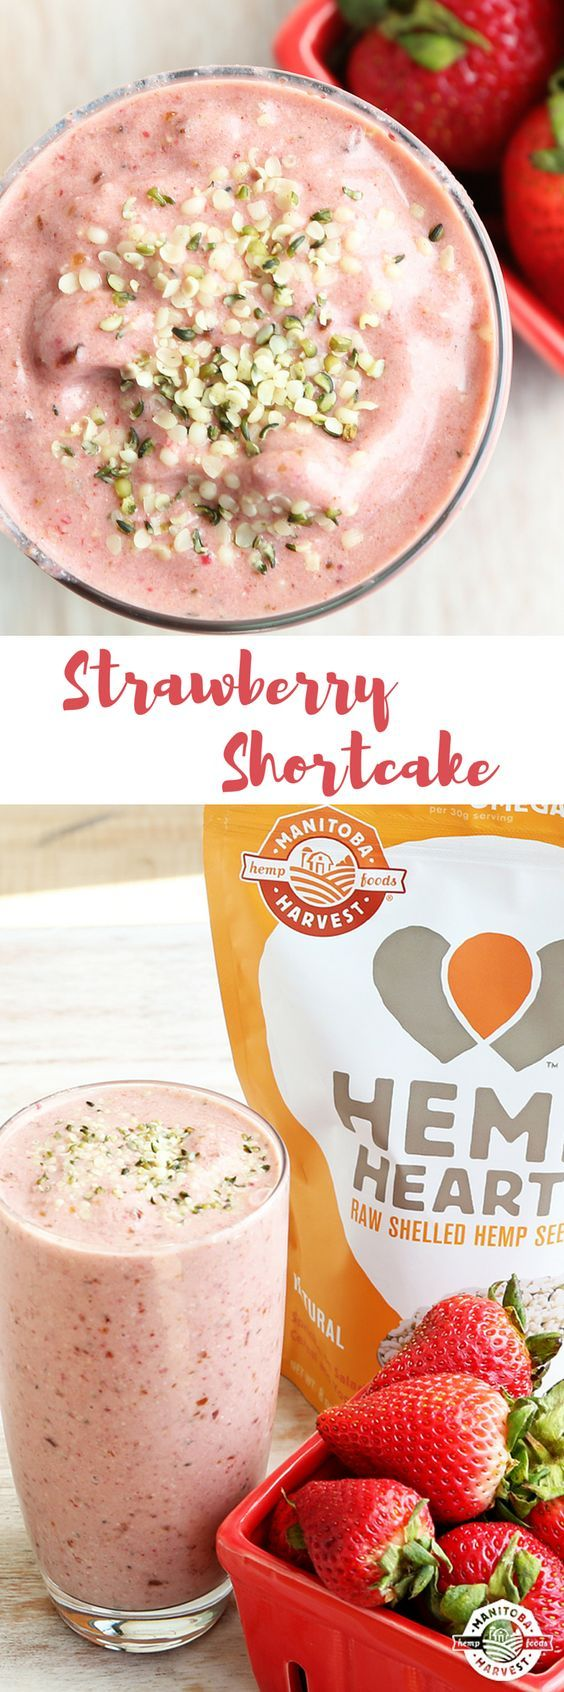 This Strawberry Shortcake smoothie tastes like dessert but it's totally guilt-free! It's made with Hemp Hearts and it's vegan too!